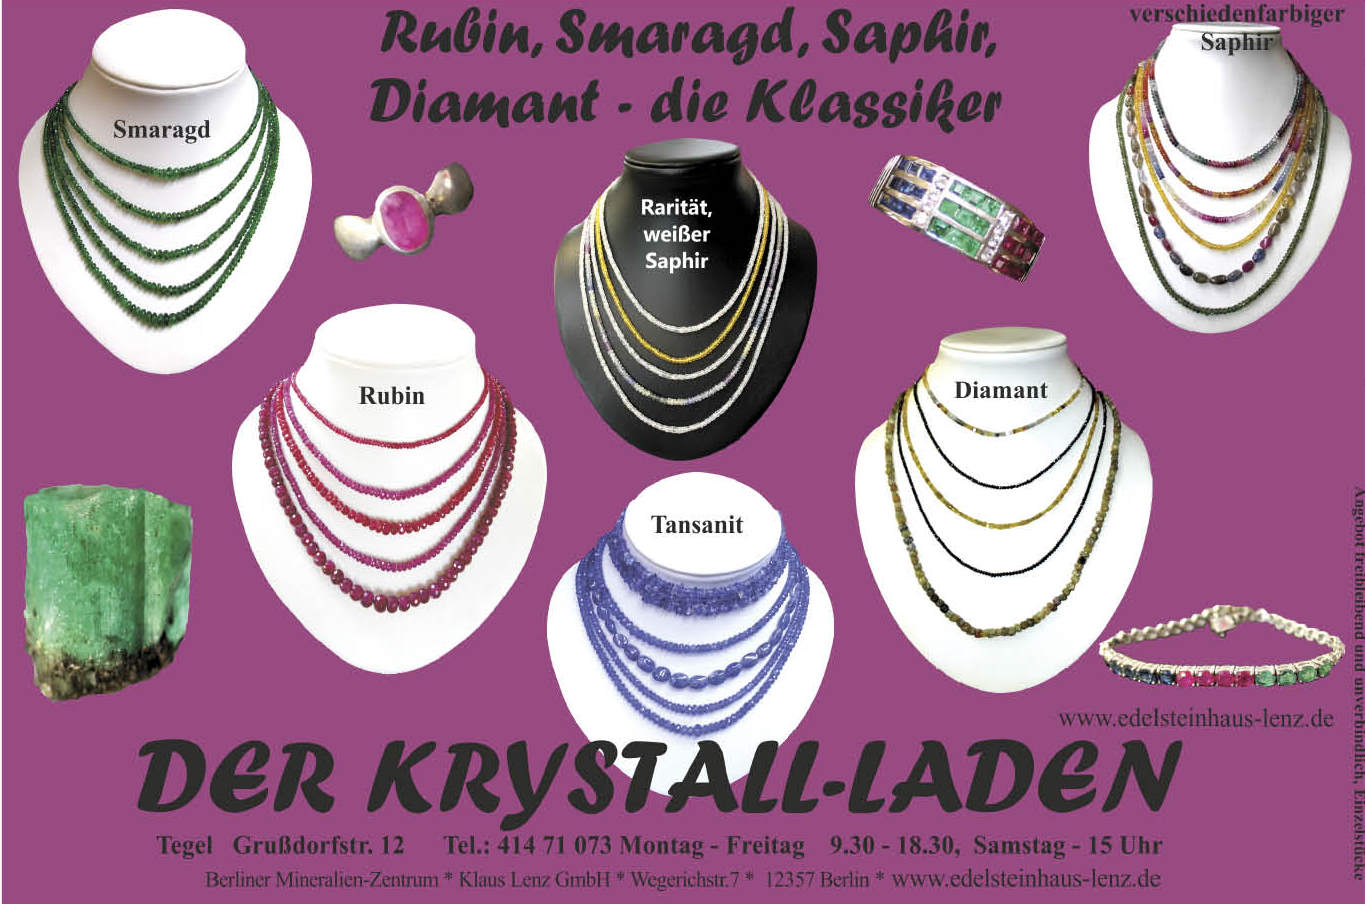 129 wp 05 Krystall-laden